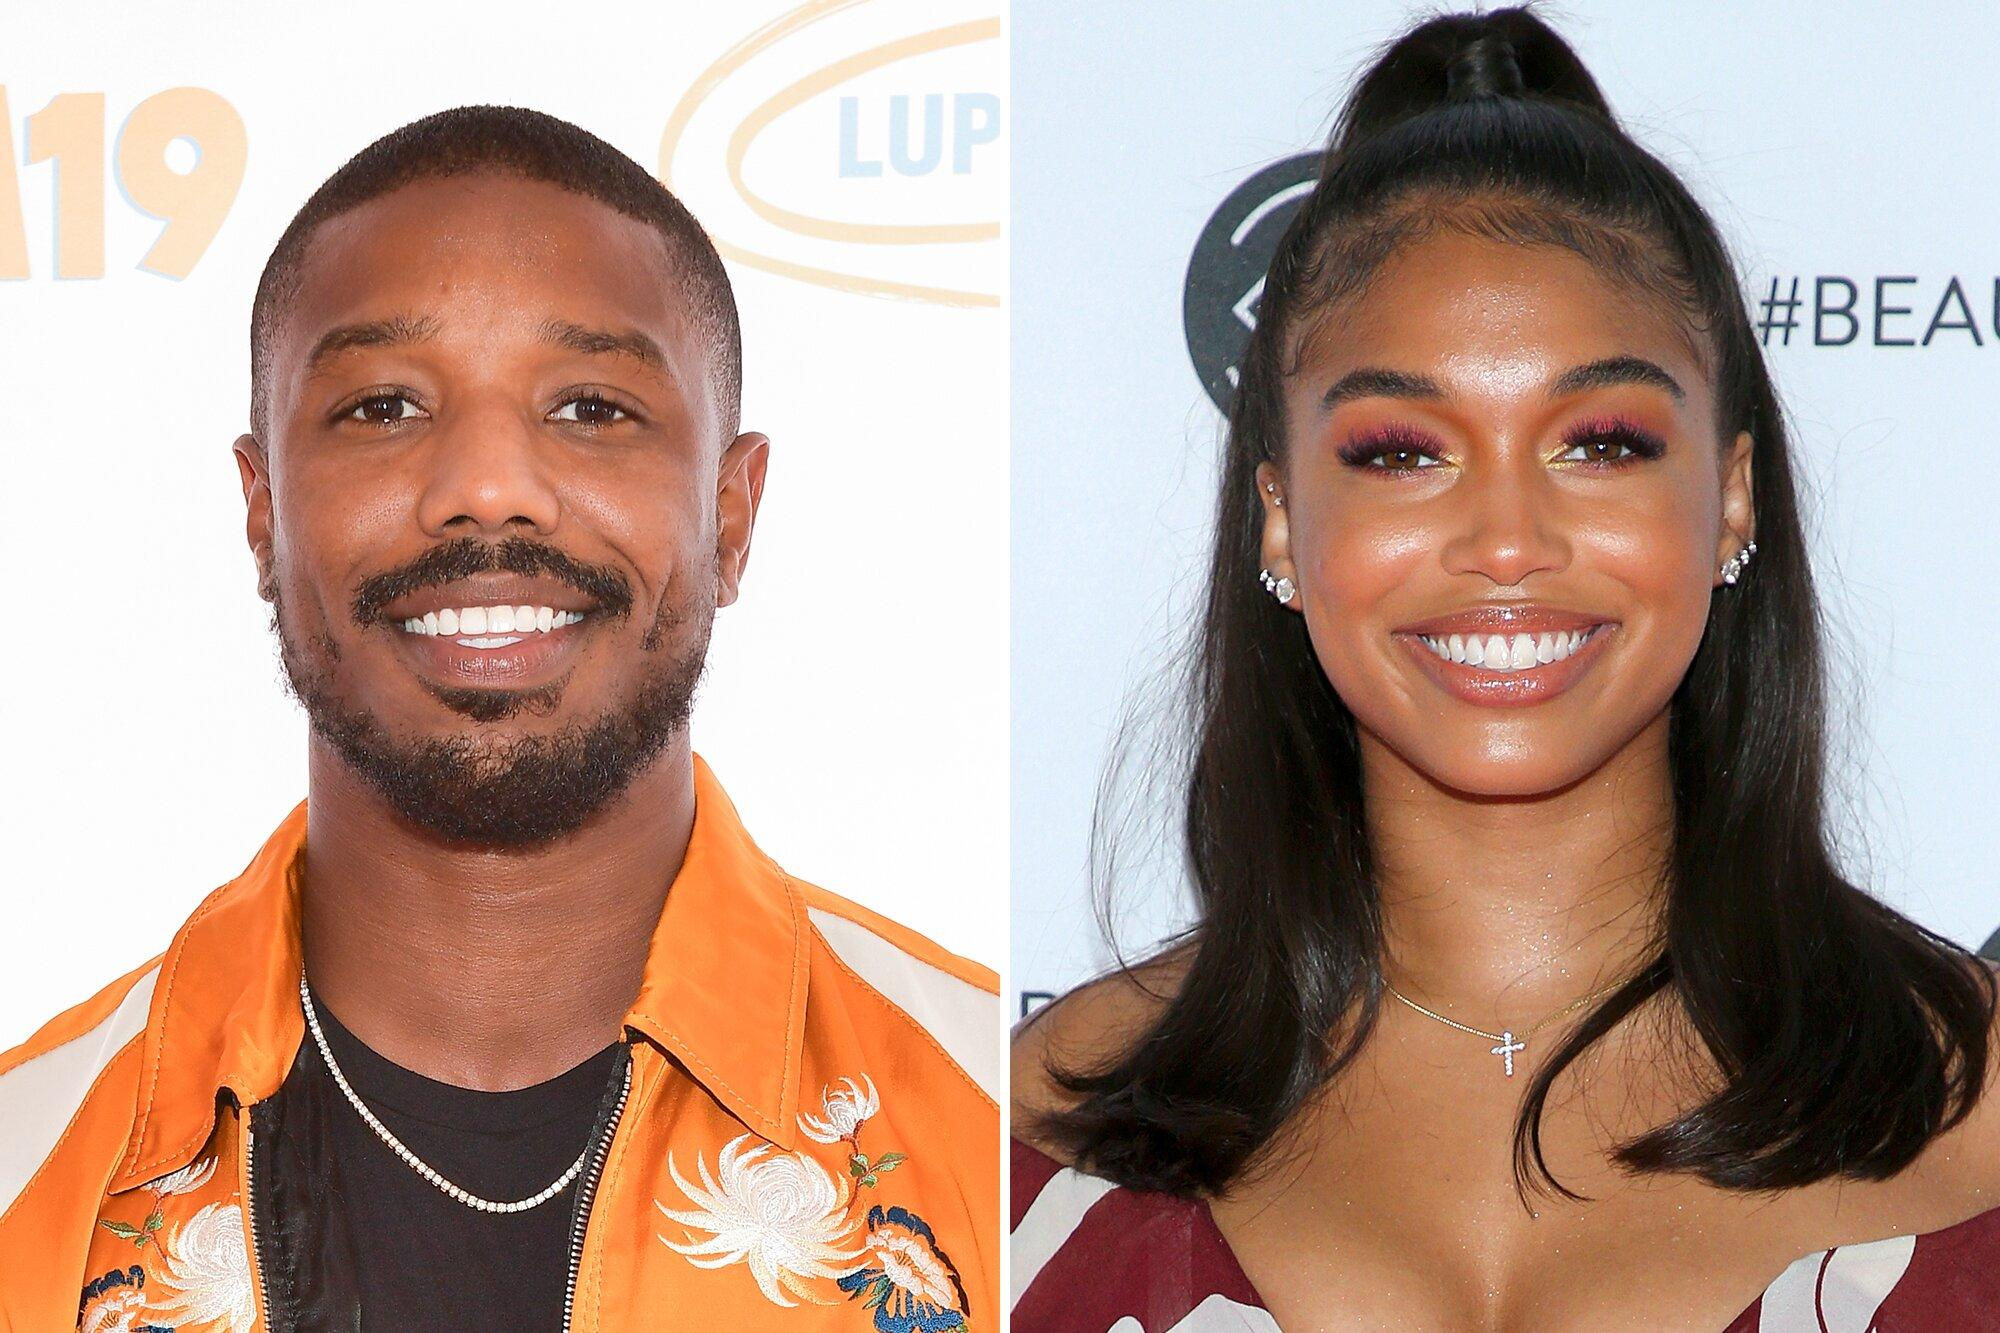 Lori Harvey Calls Boyfriend Michael B. Jordan 'Mine' as He Shares Shirtless Photo from Their Vacation